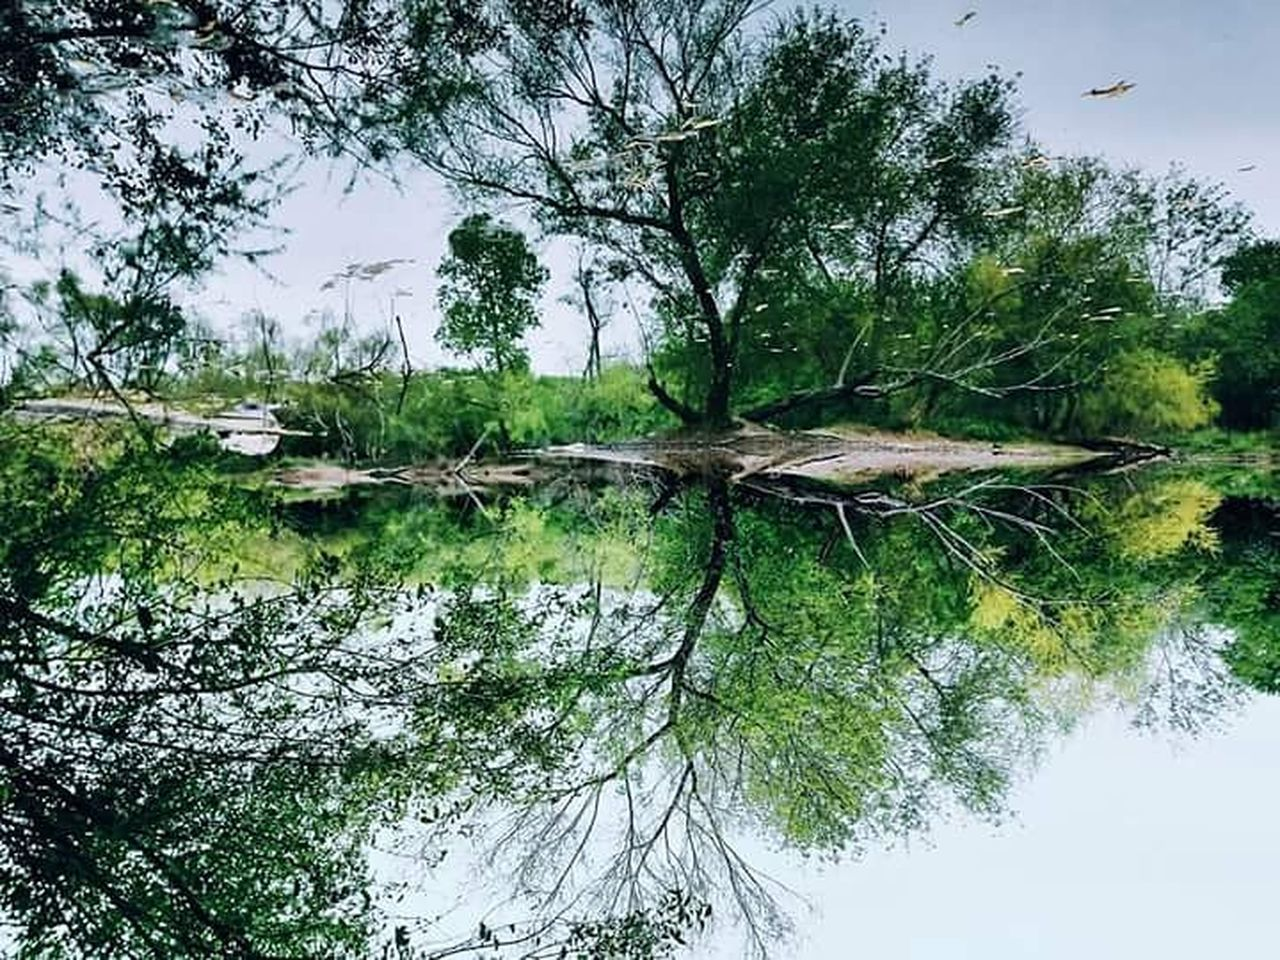 tree, water, reflection, lake, tranquility, nature, tranquil scene, day, waterfront, outdoors, no people, forest, beauty in nature, growth, branch, scenics, tree trunk, sky, dead tree